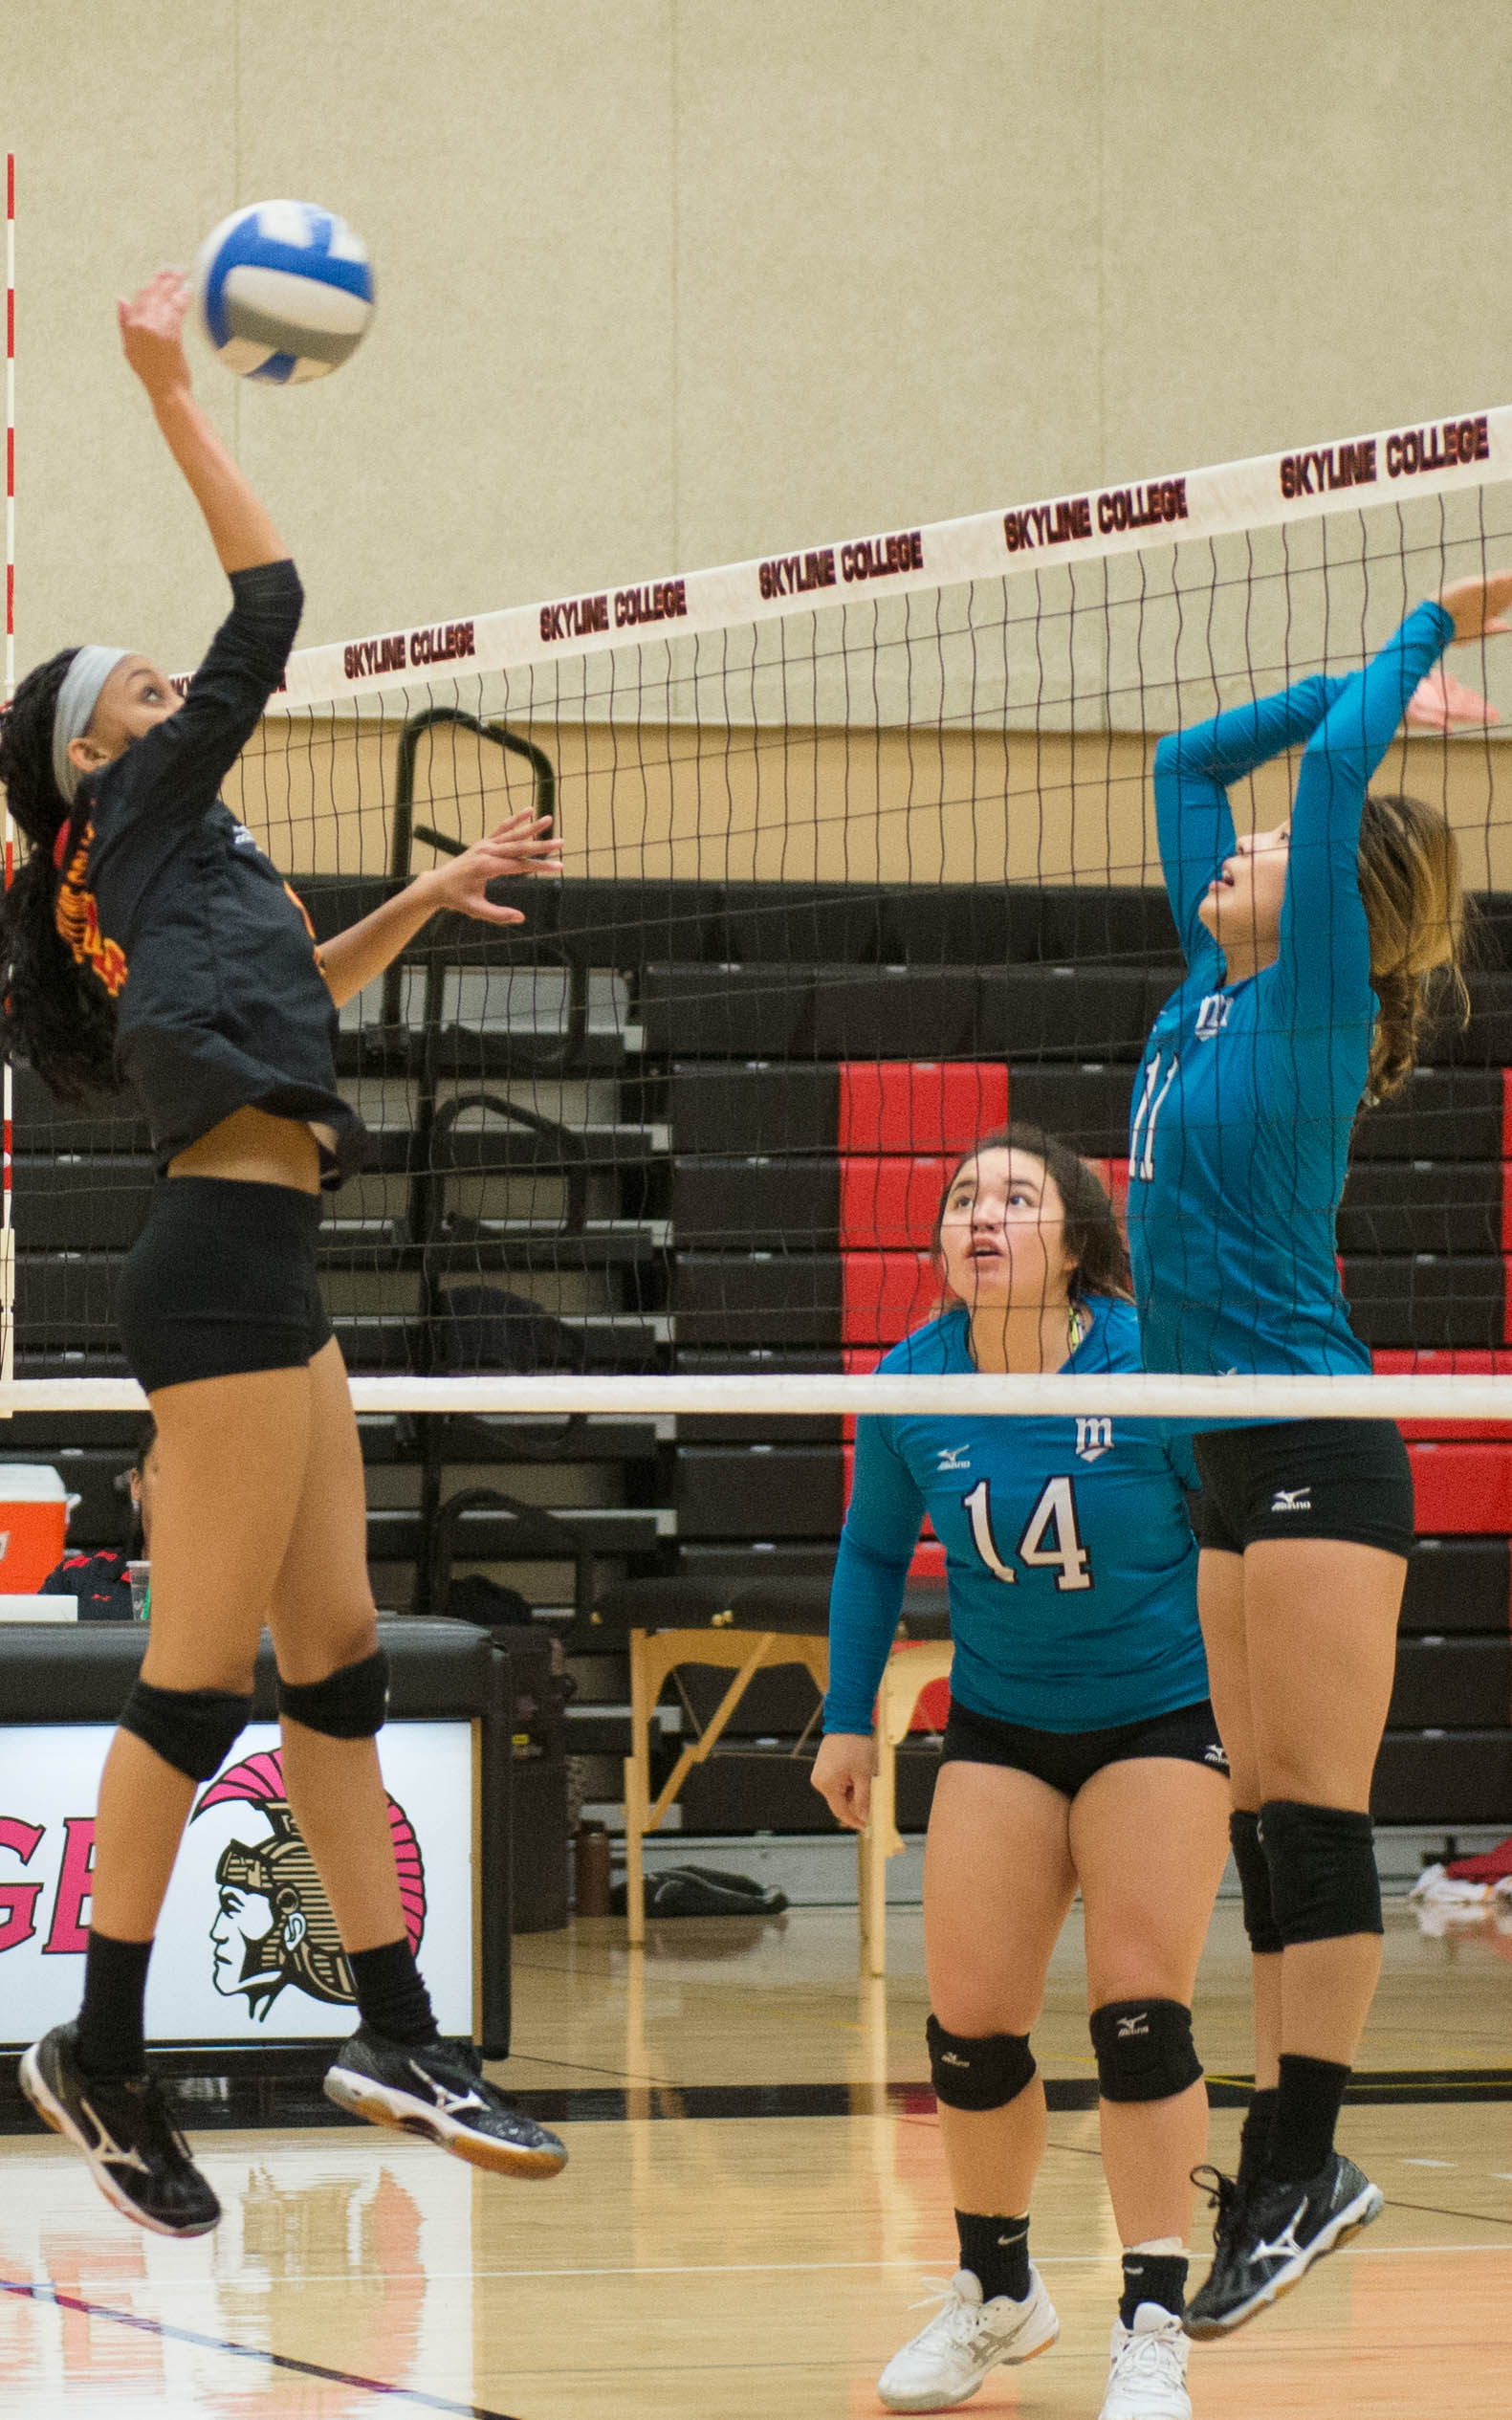 Raja Elliot spikes the ball against Mission College's Mege Gomez on Nov. 4.